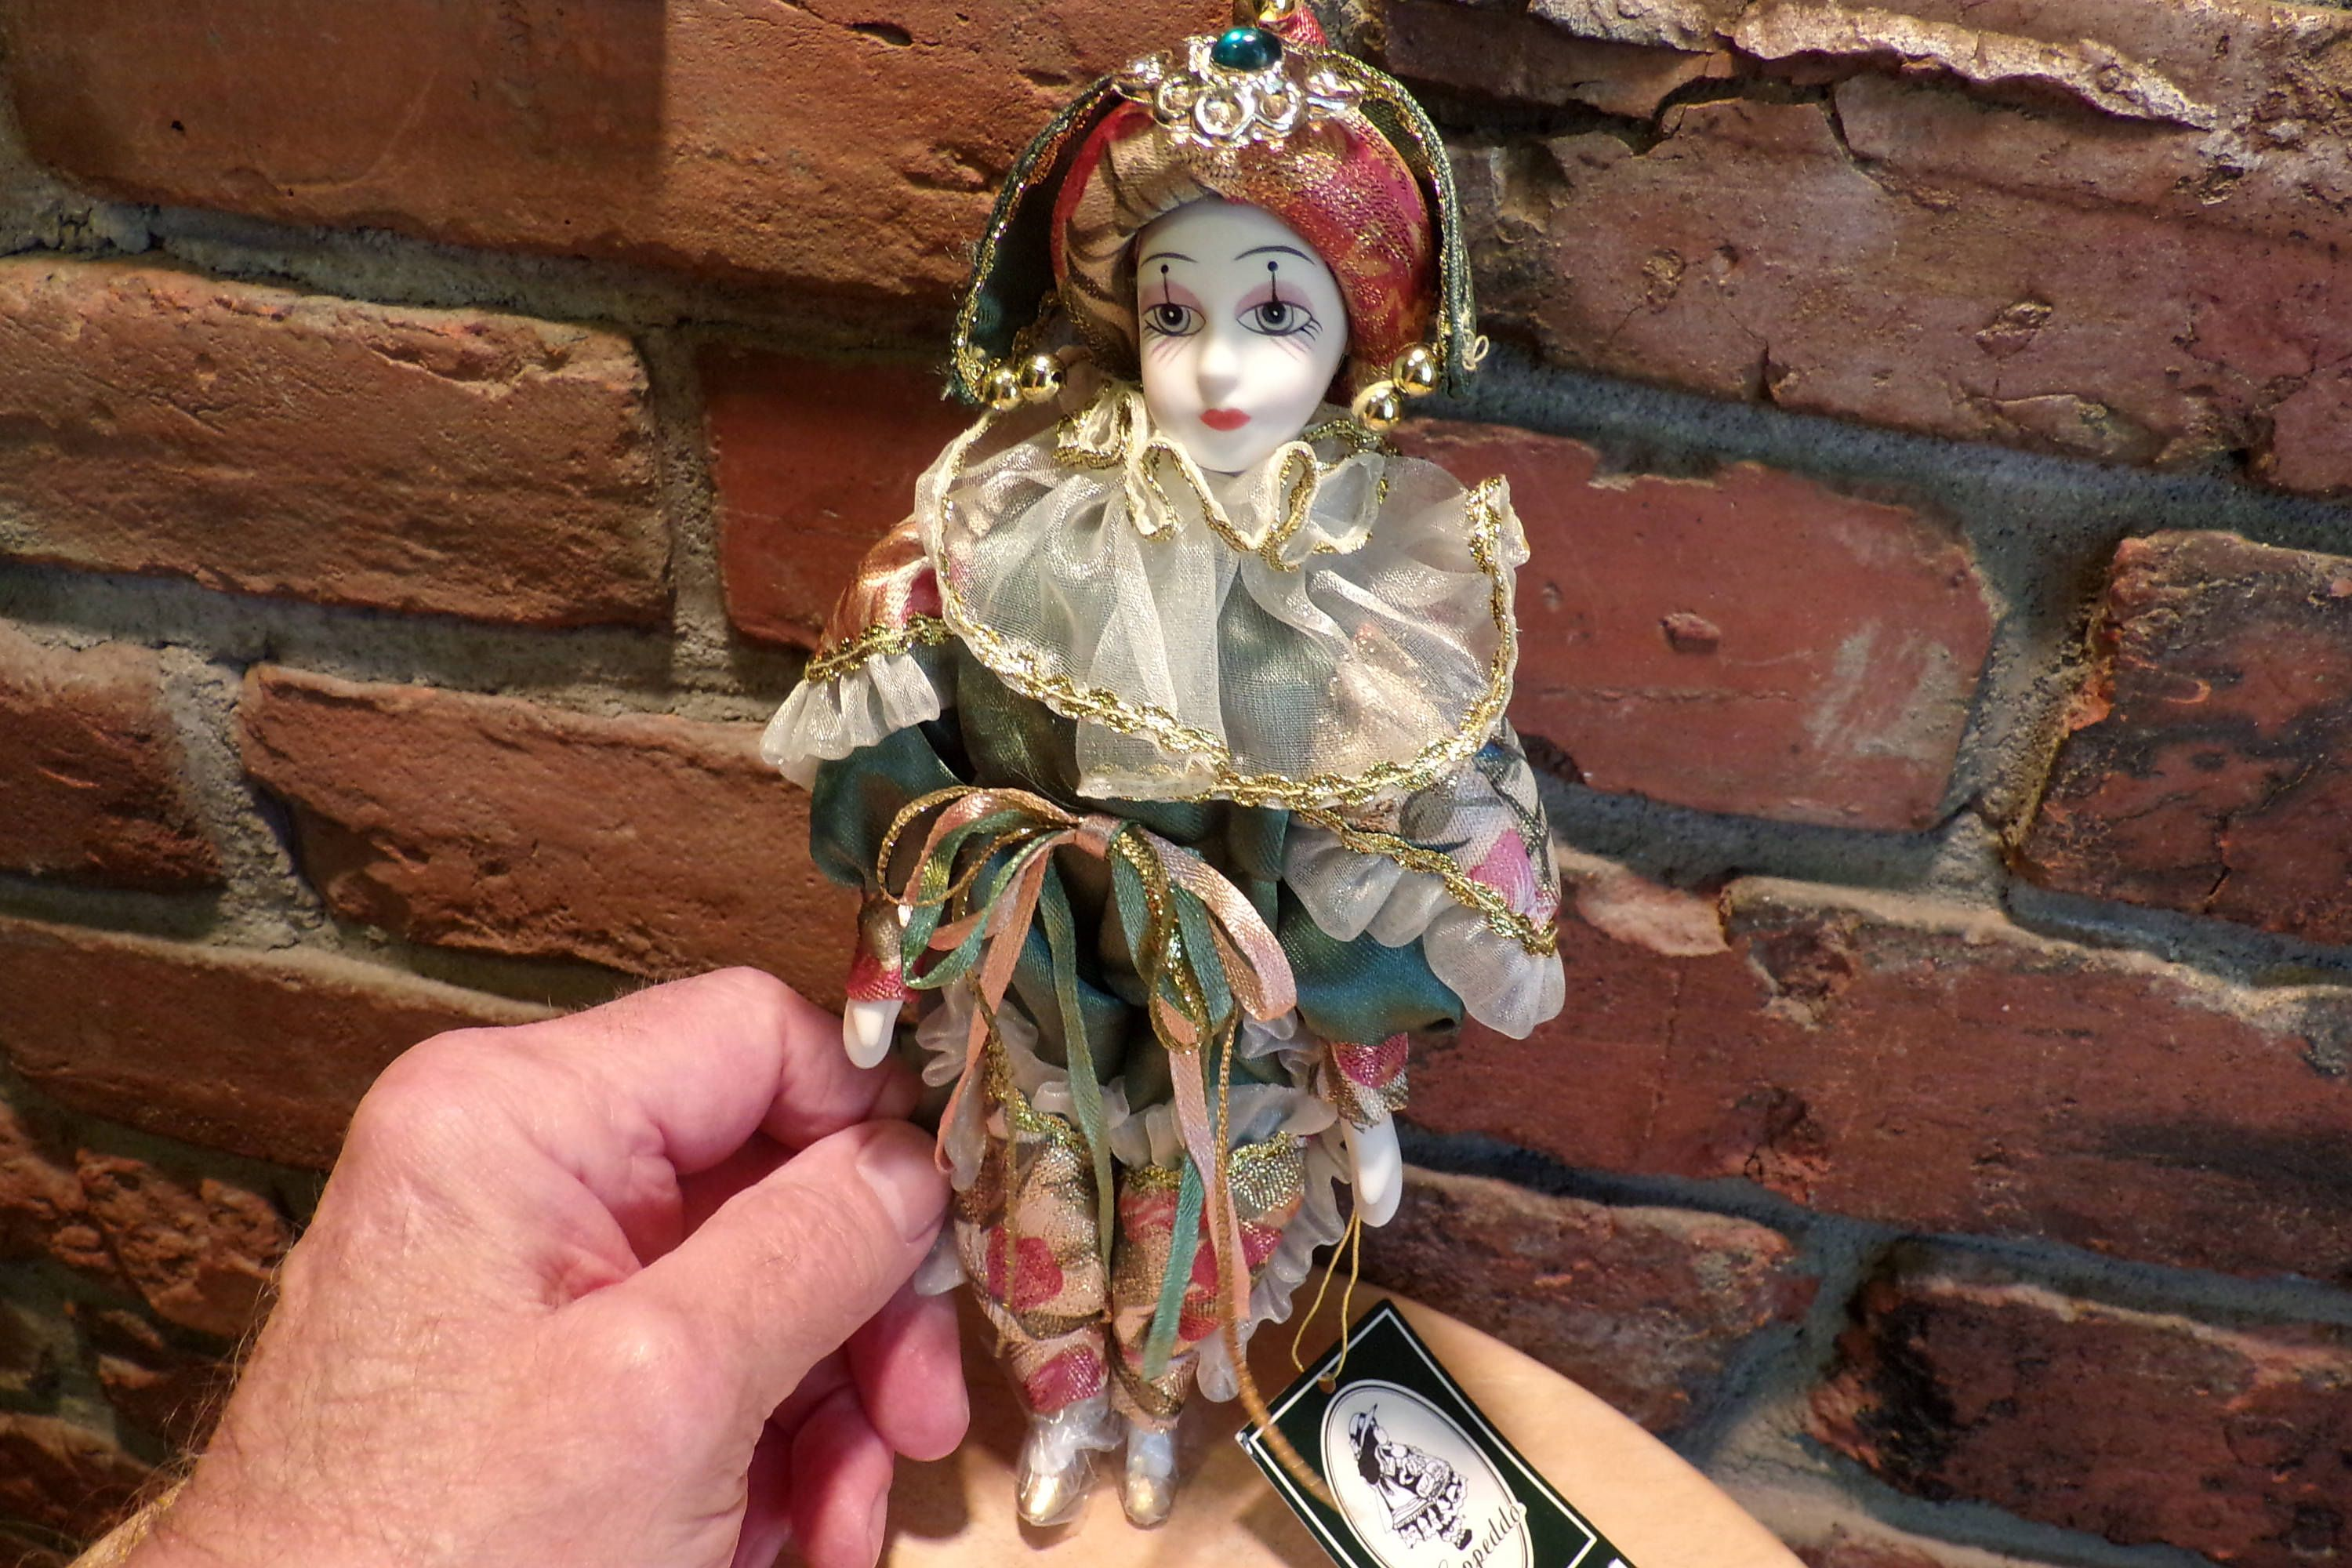 Geppeddo Elegant Porcelain Harlequin Jester Clown DOLL Green Roses, Geppeddo Porcelain Clown (Jester) by Morethebuckles on Etsy